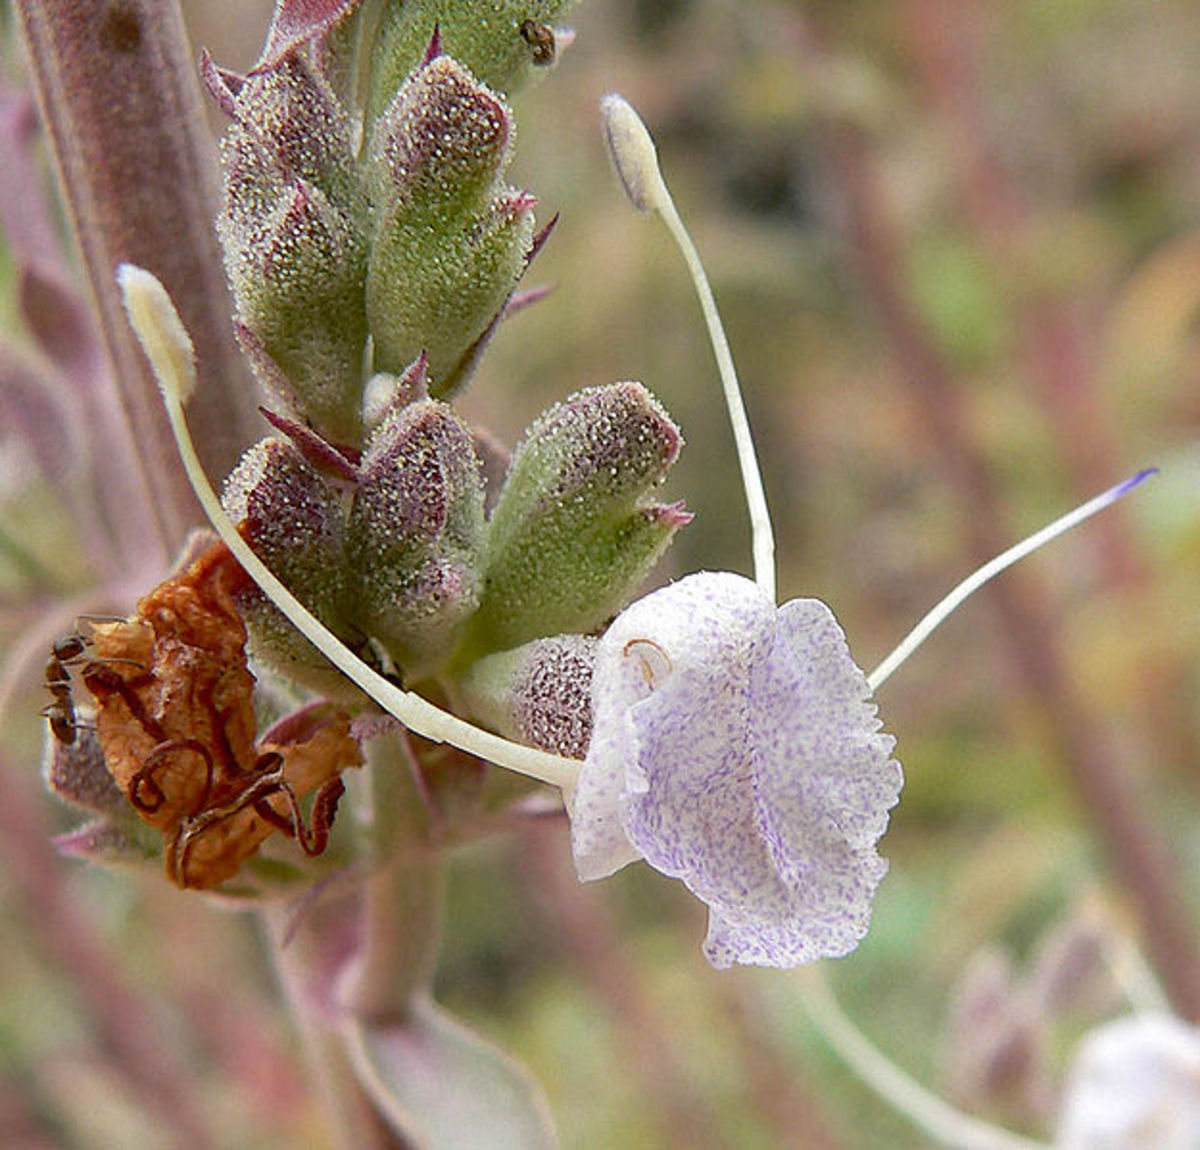 White sage has become quite the buzz lately.